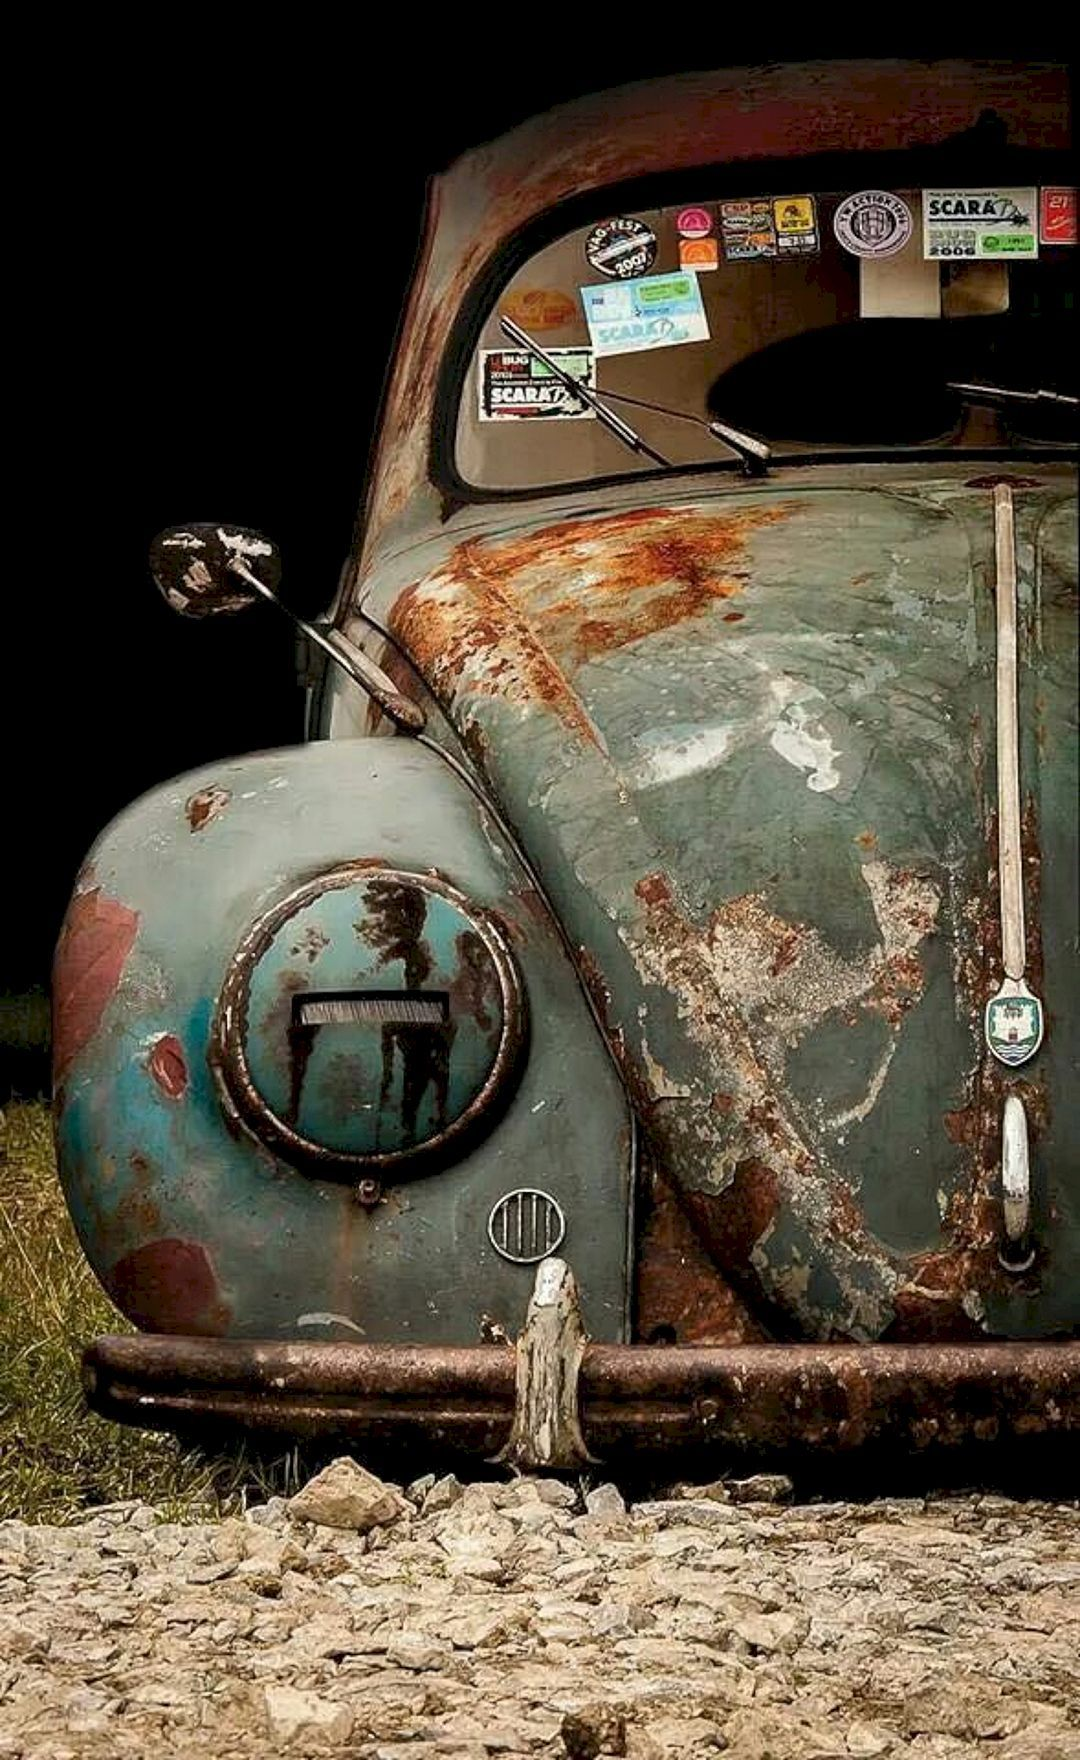 Pin By Mahesh Babu On Cars And Motorcycles Vintage Vw Rusty Cars Volkswagen